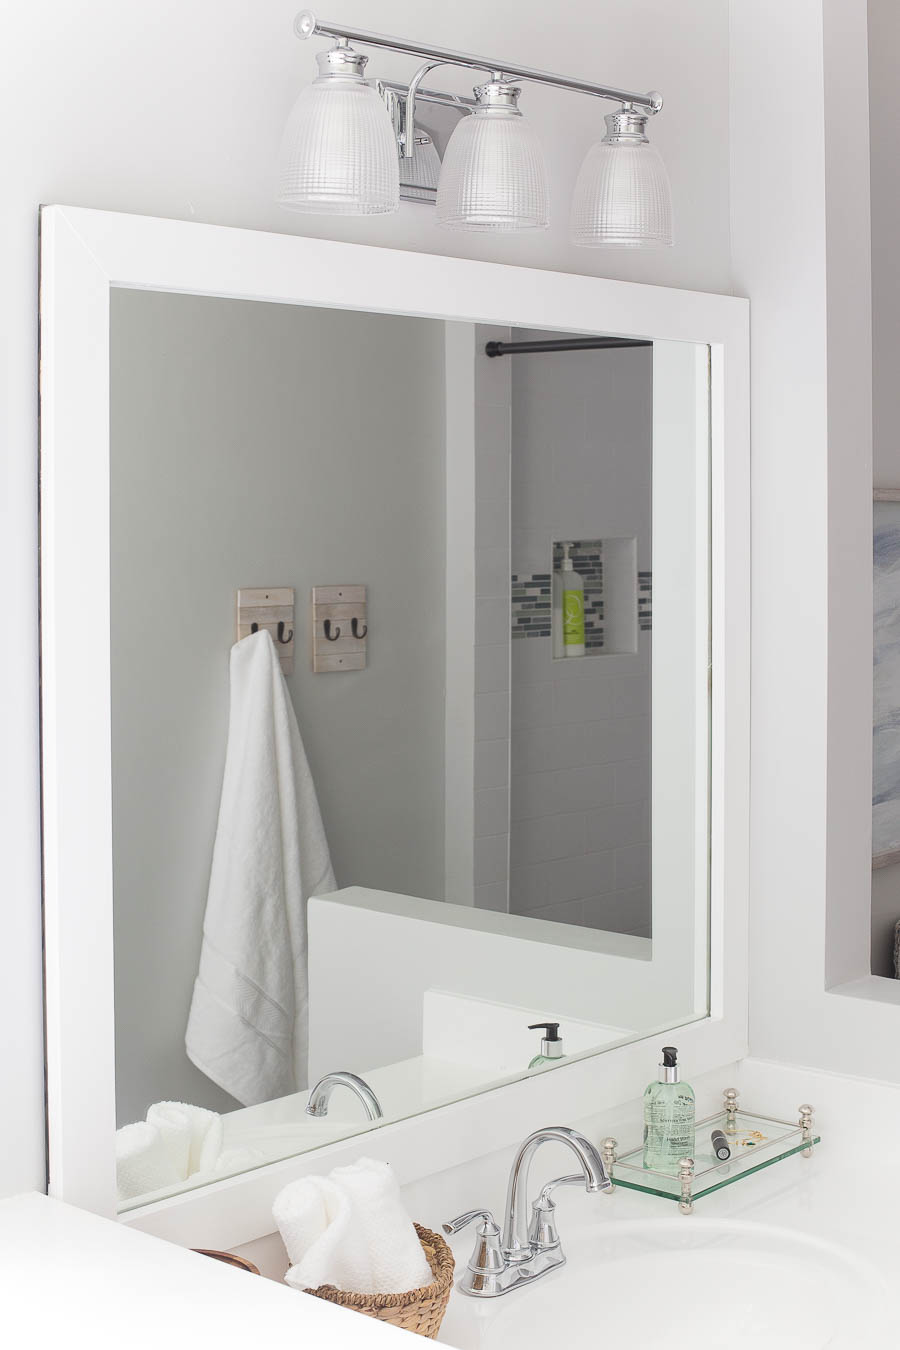 How to frame a bathroom mirror easy diy project Frames for bathroom wall mirrors